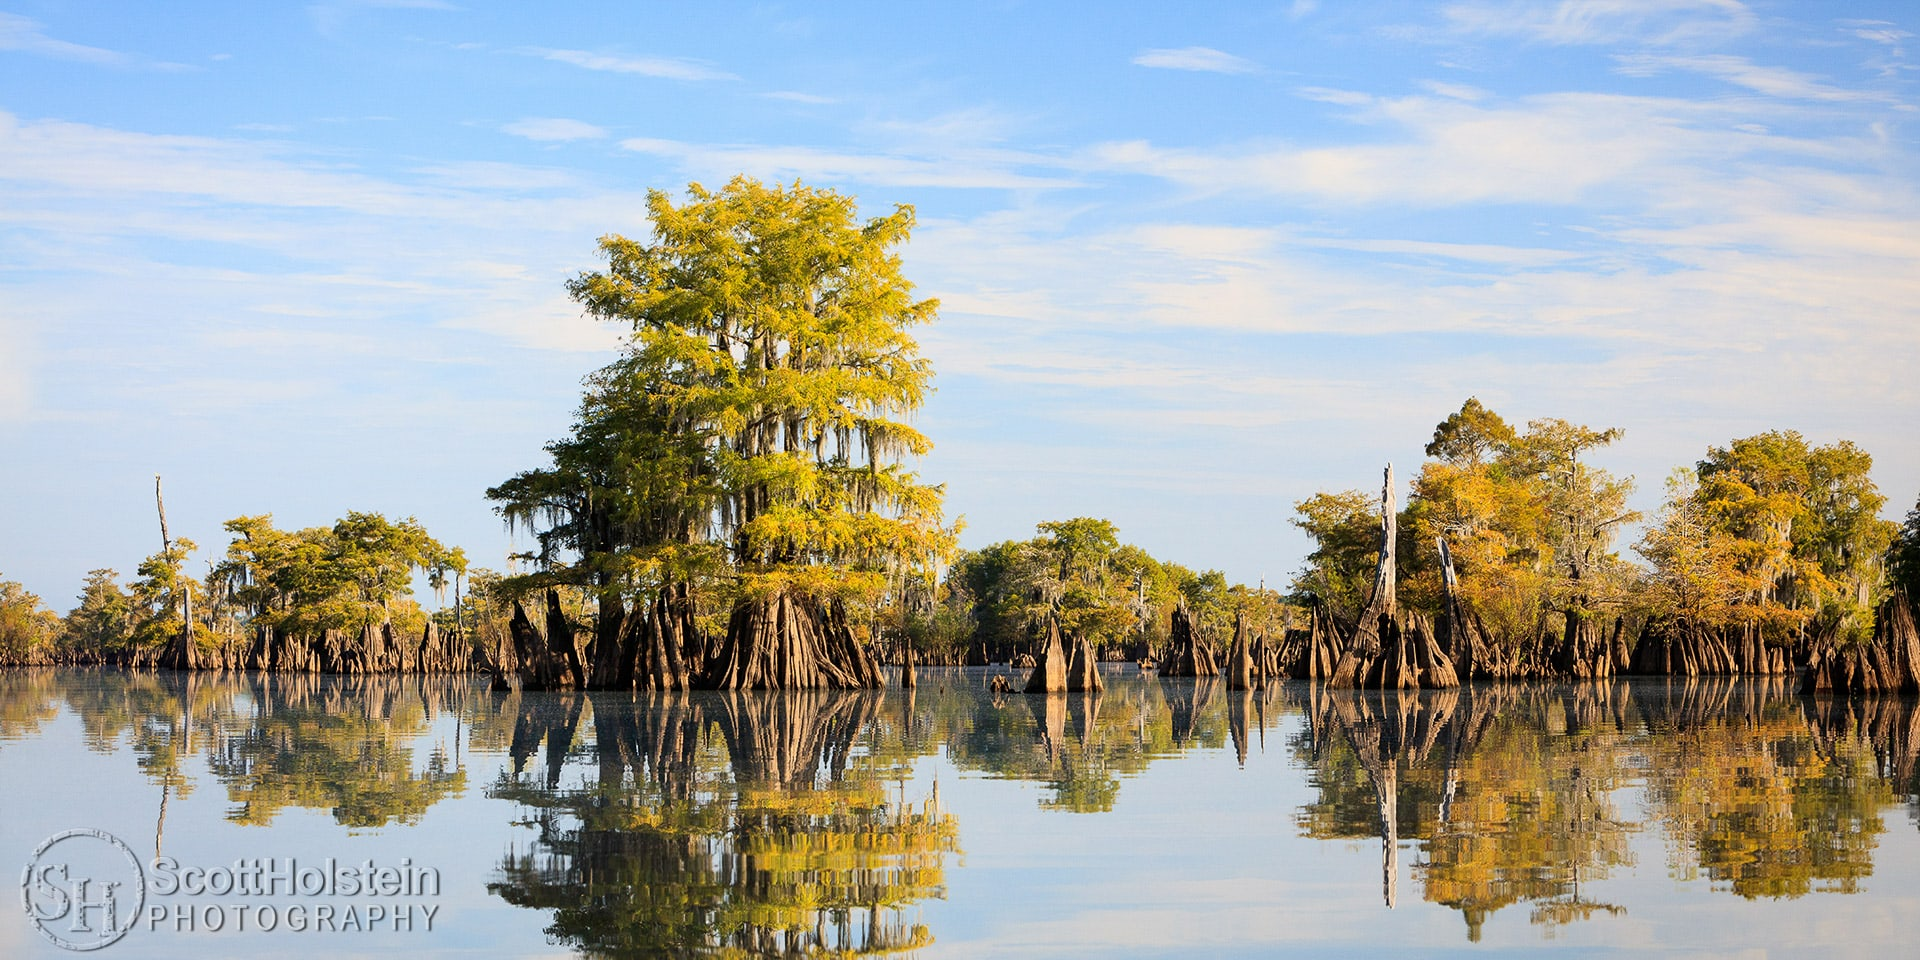 Cypress trees and stumps rise out of the water in Dead Lakes in Wewahitchka, Florida.